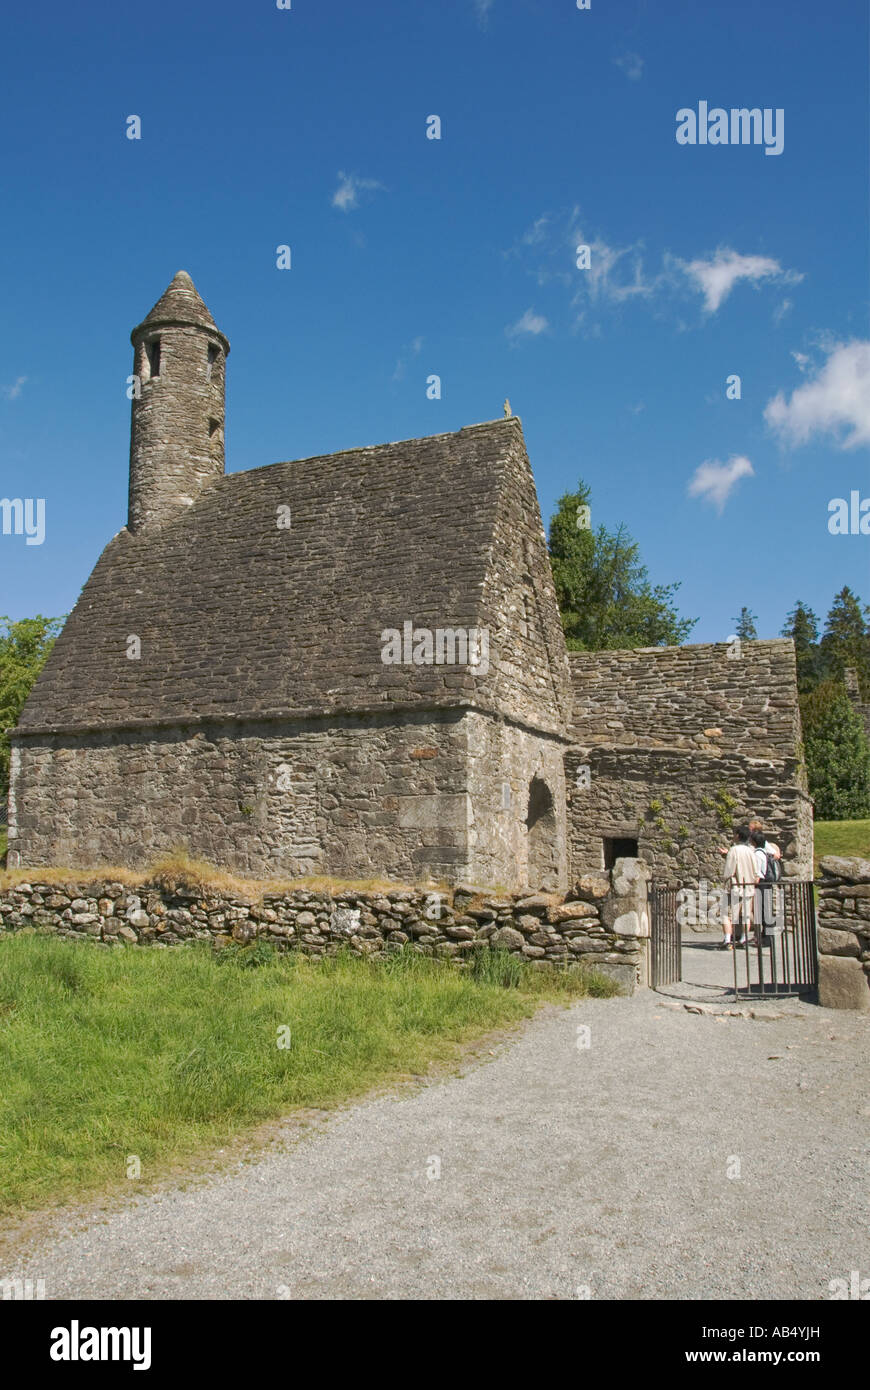 St Kevins Kitchen Stock Photos & St Kevins Kitchen Stock Images - Alamy